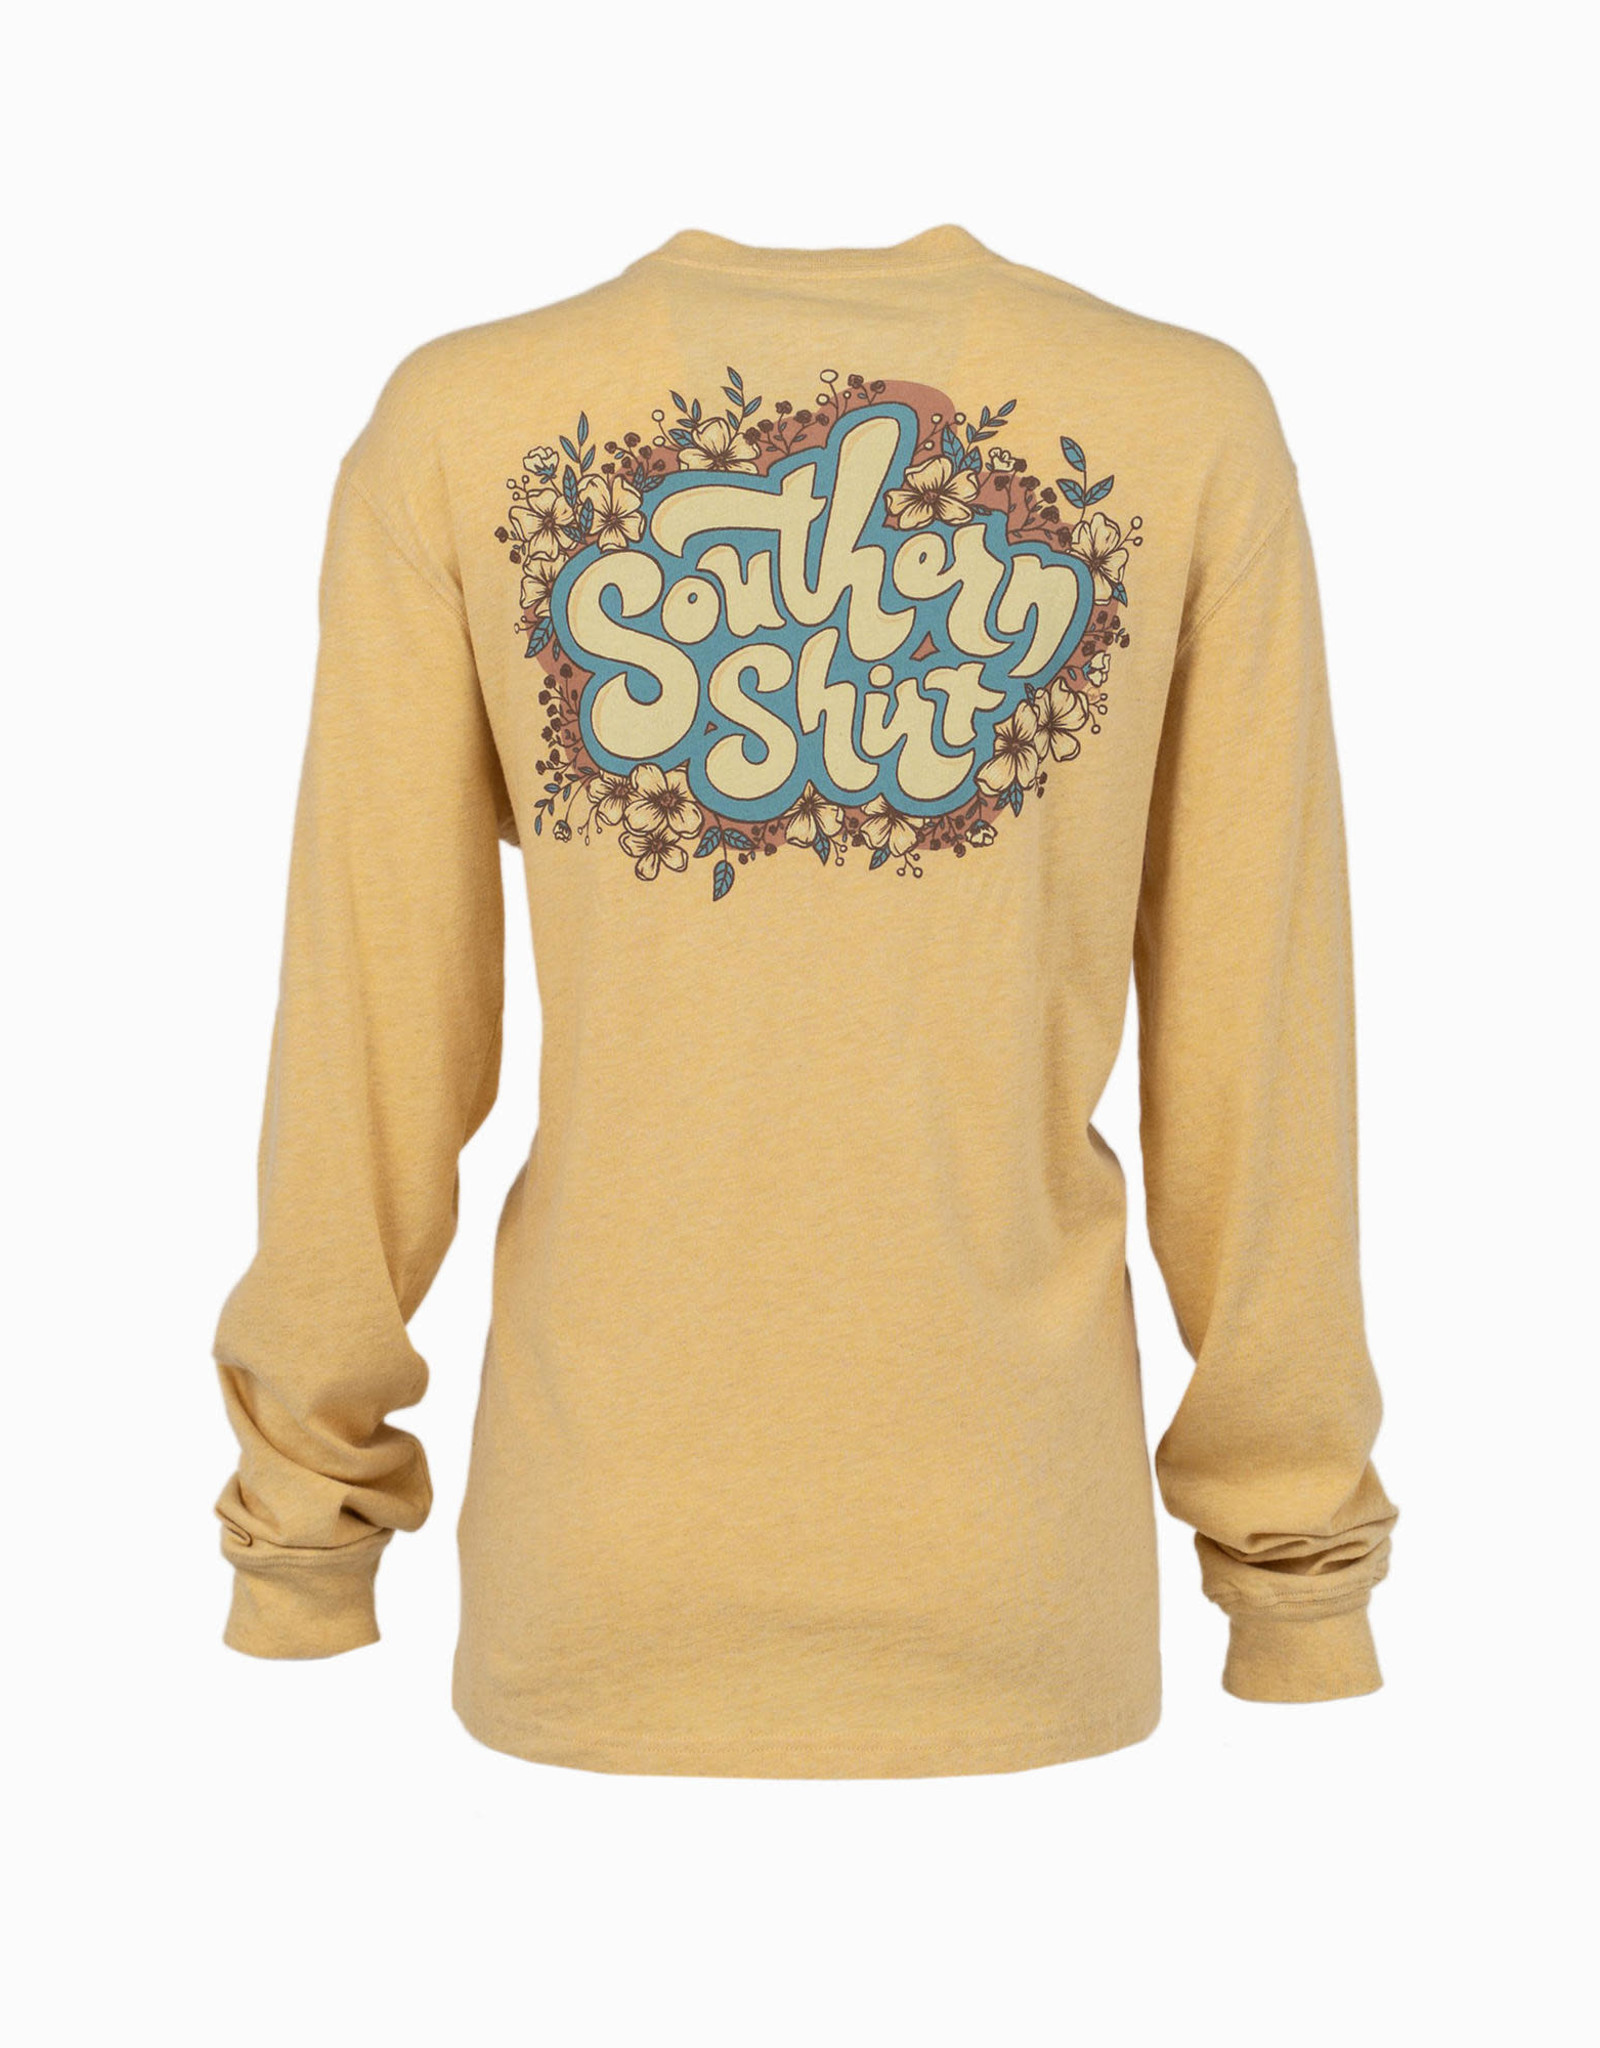 Southern Shirt Co Far Out Floral Tee